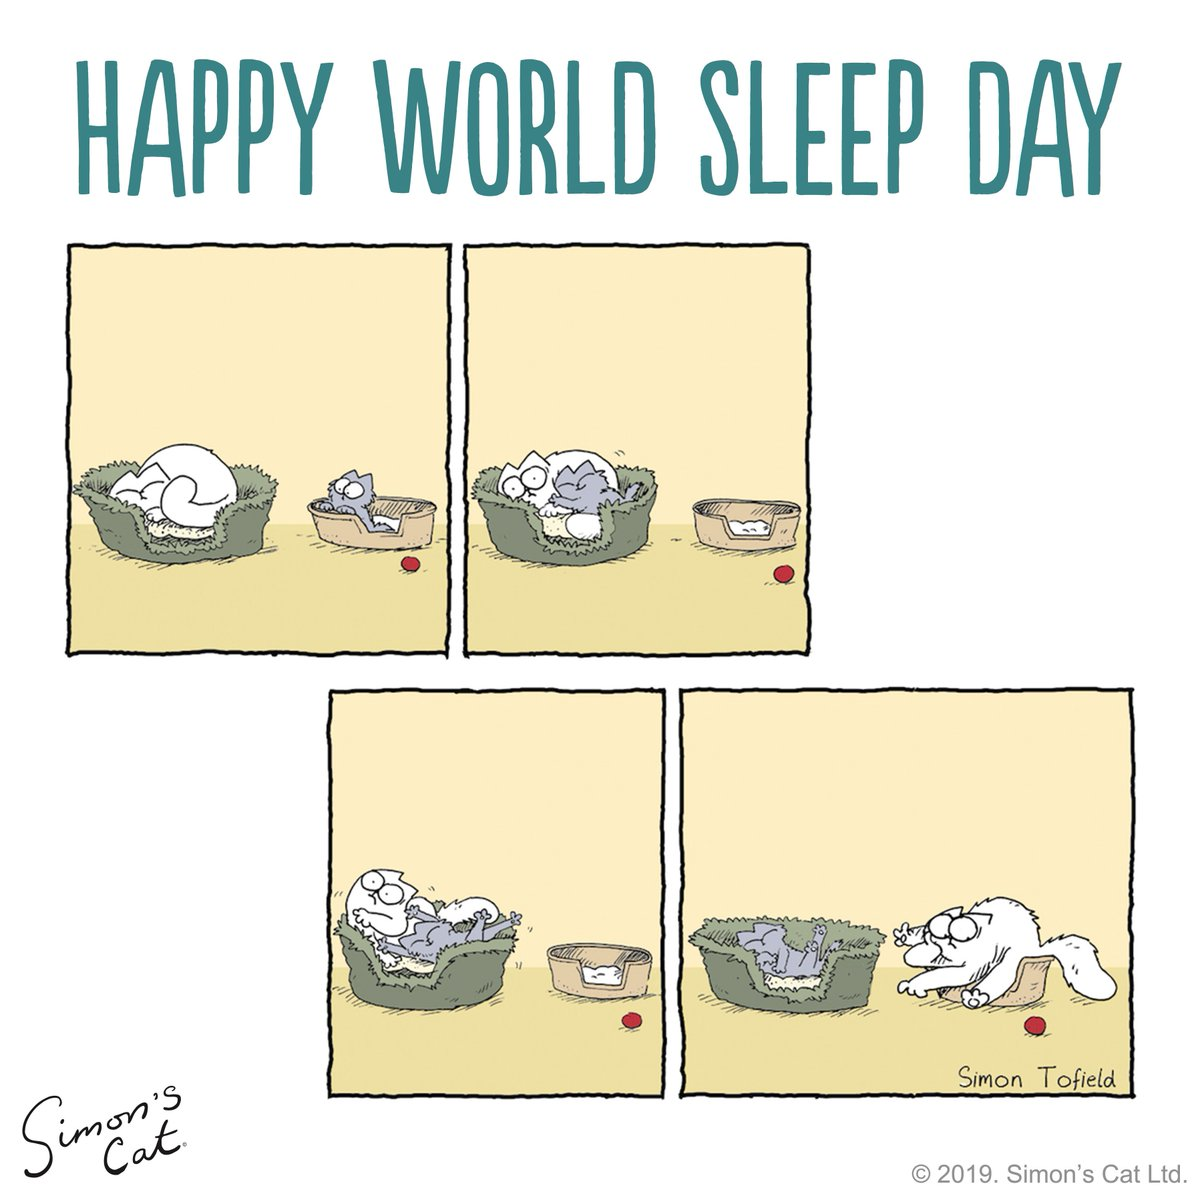 Everyday is #WorldSleepDay if you are a cat!  We want to see photos of your napping kitties. <br>http://pic.twitter.com/DXwSVhKDgX